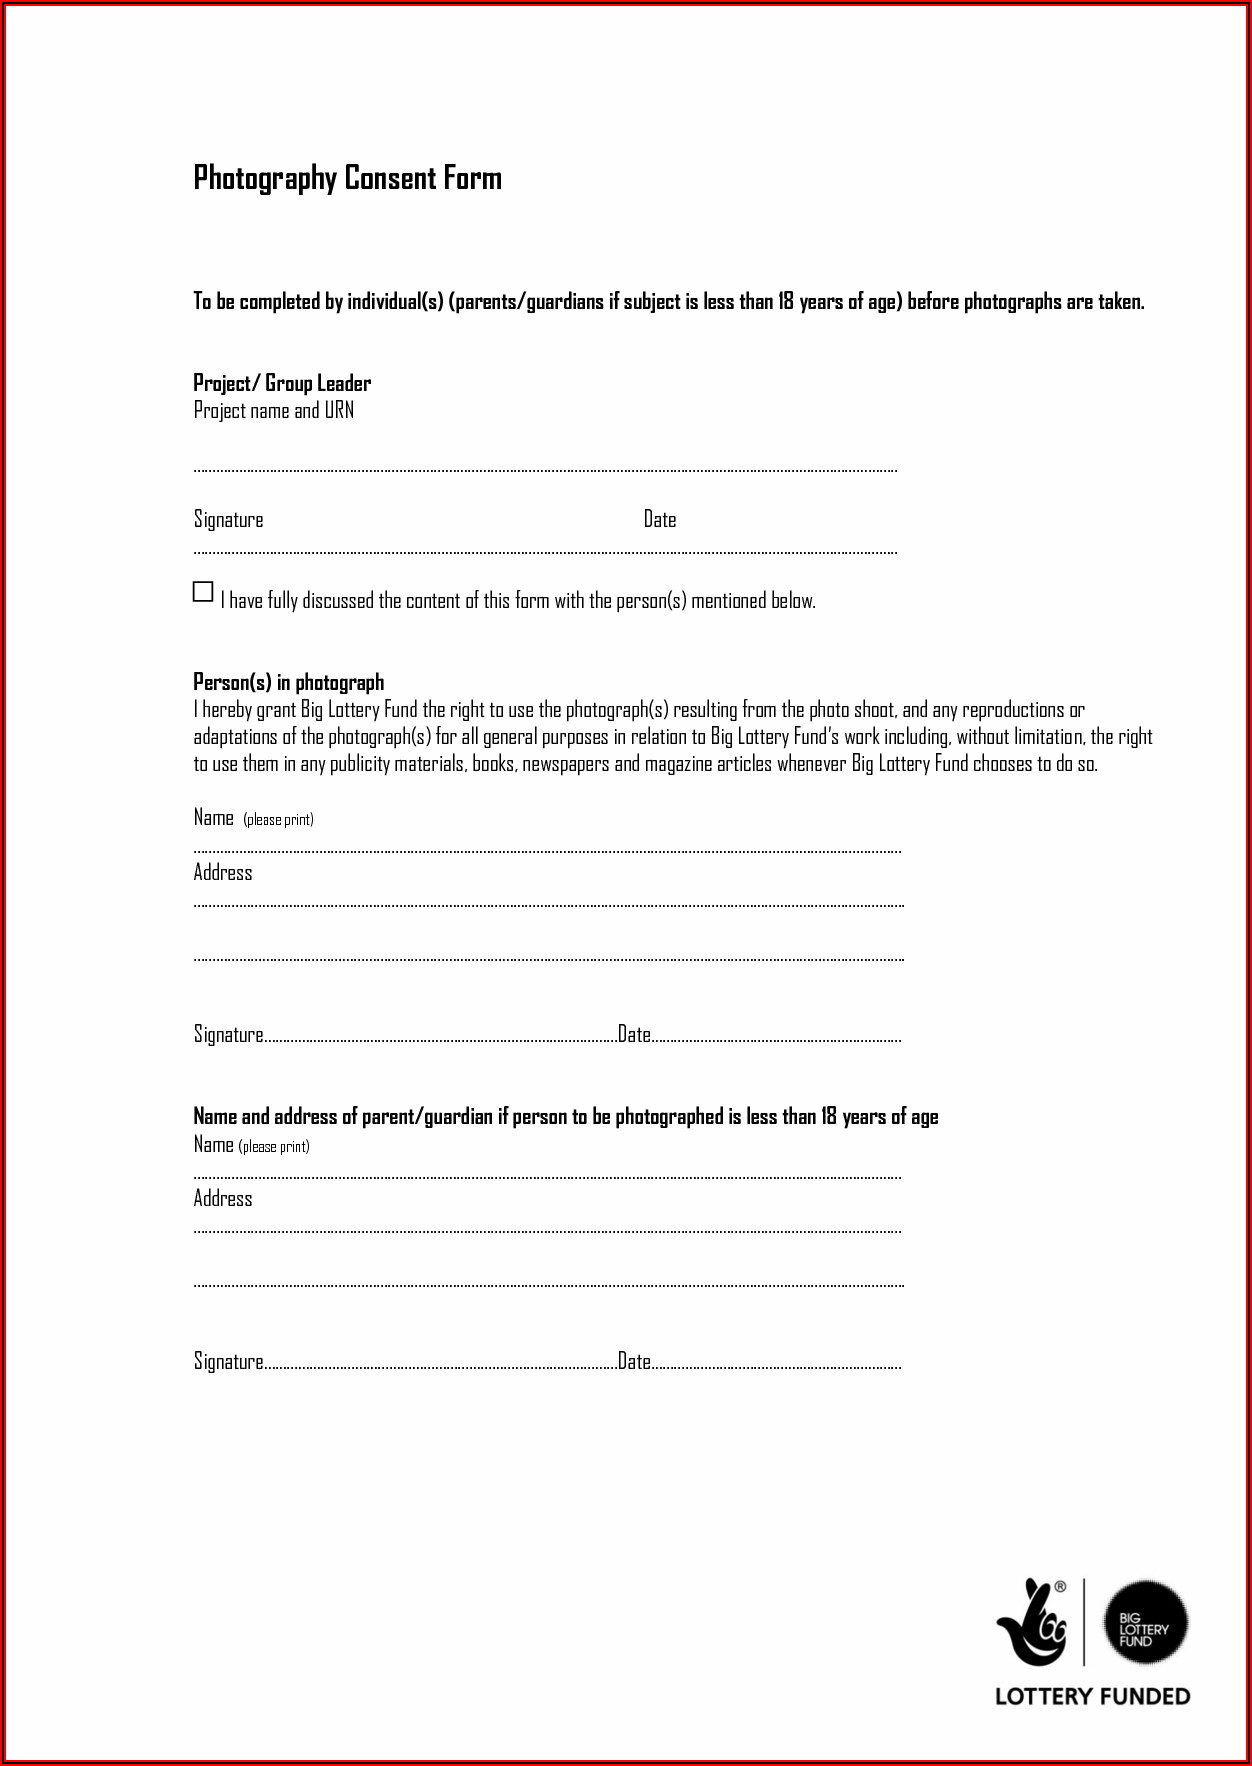 Medical Photography Consent Form Template